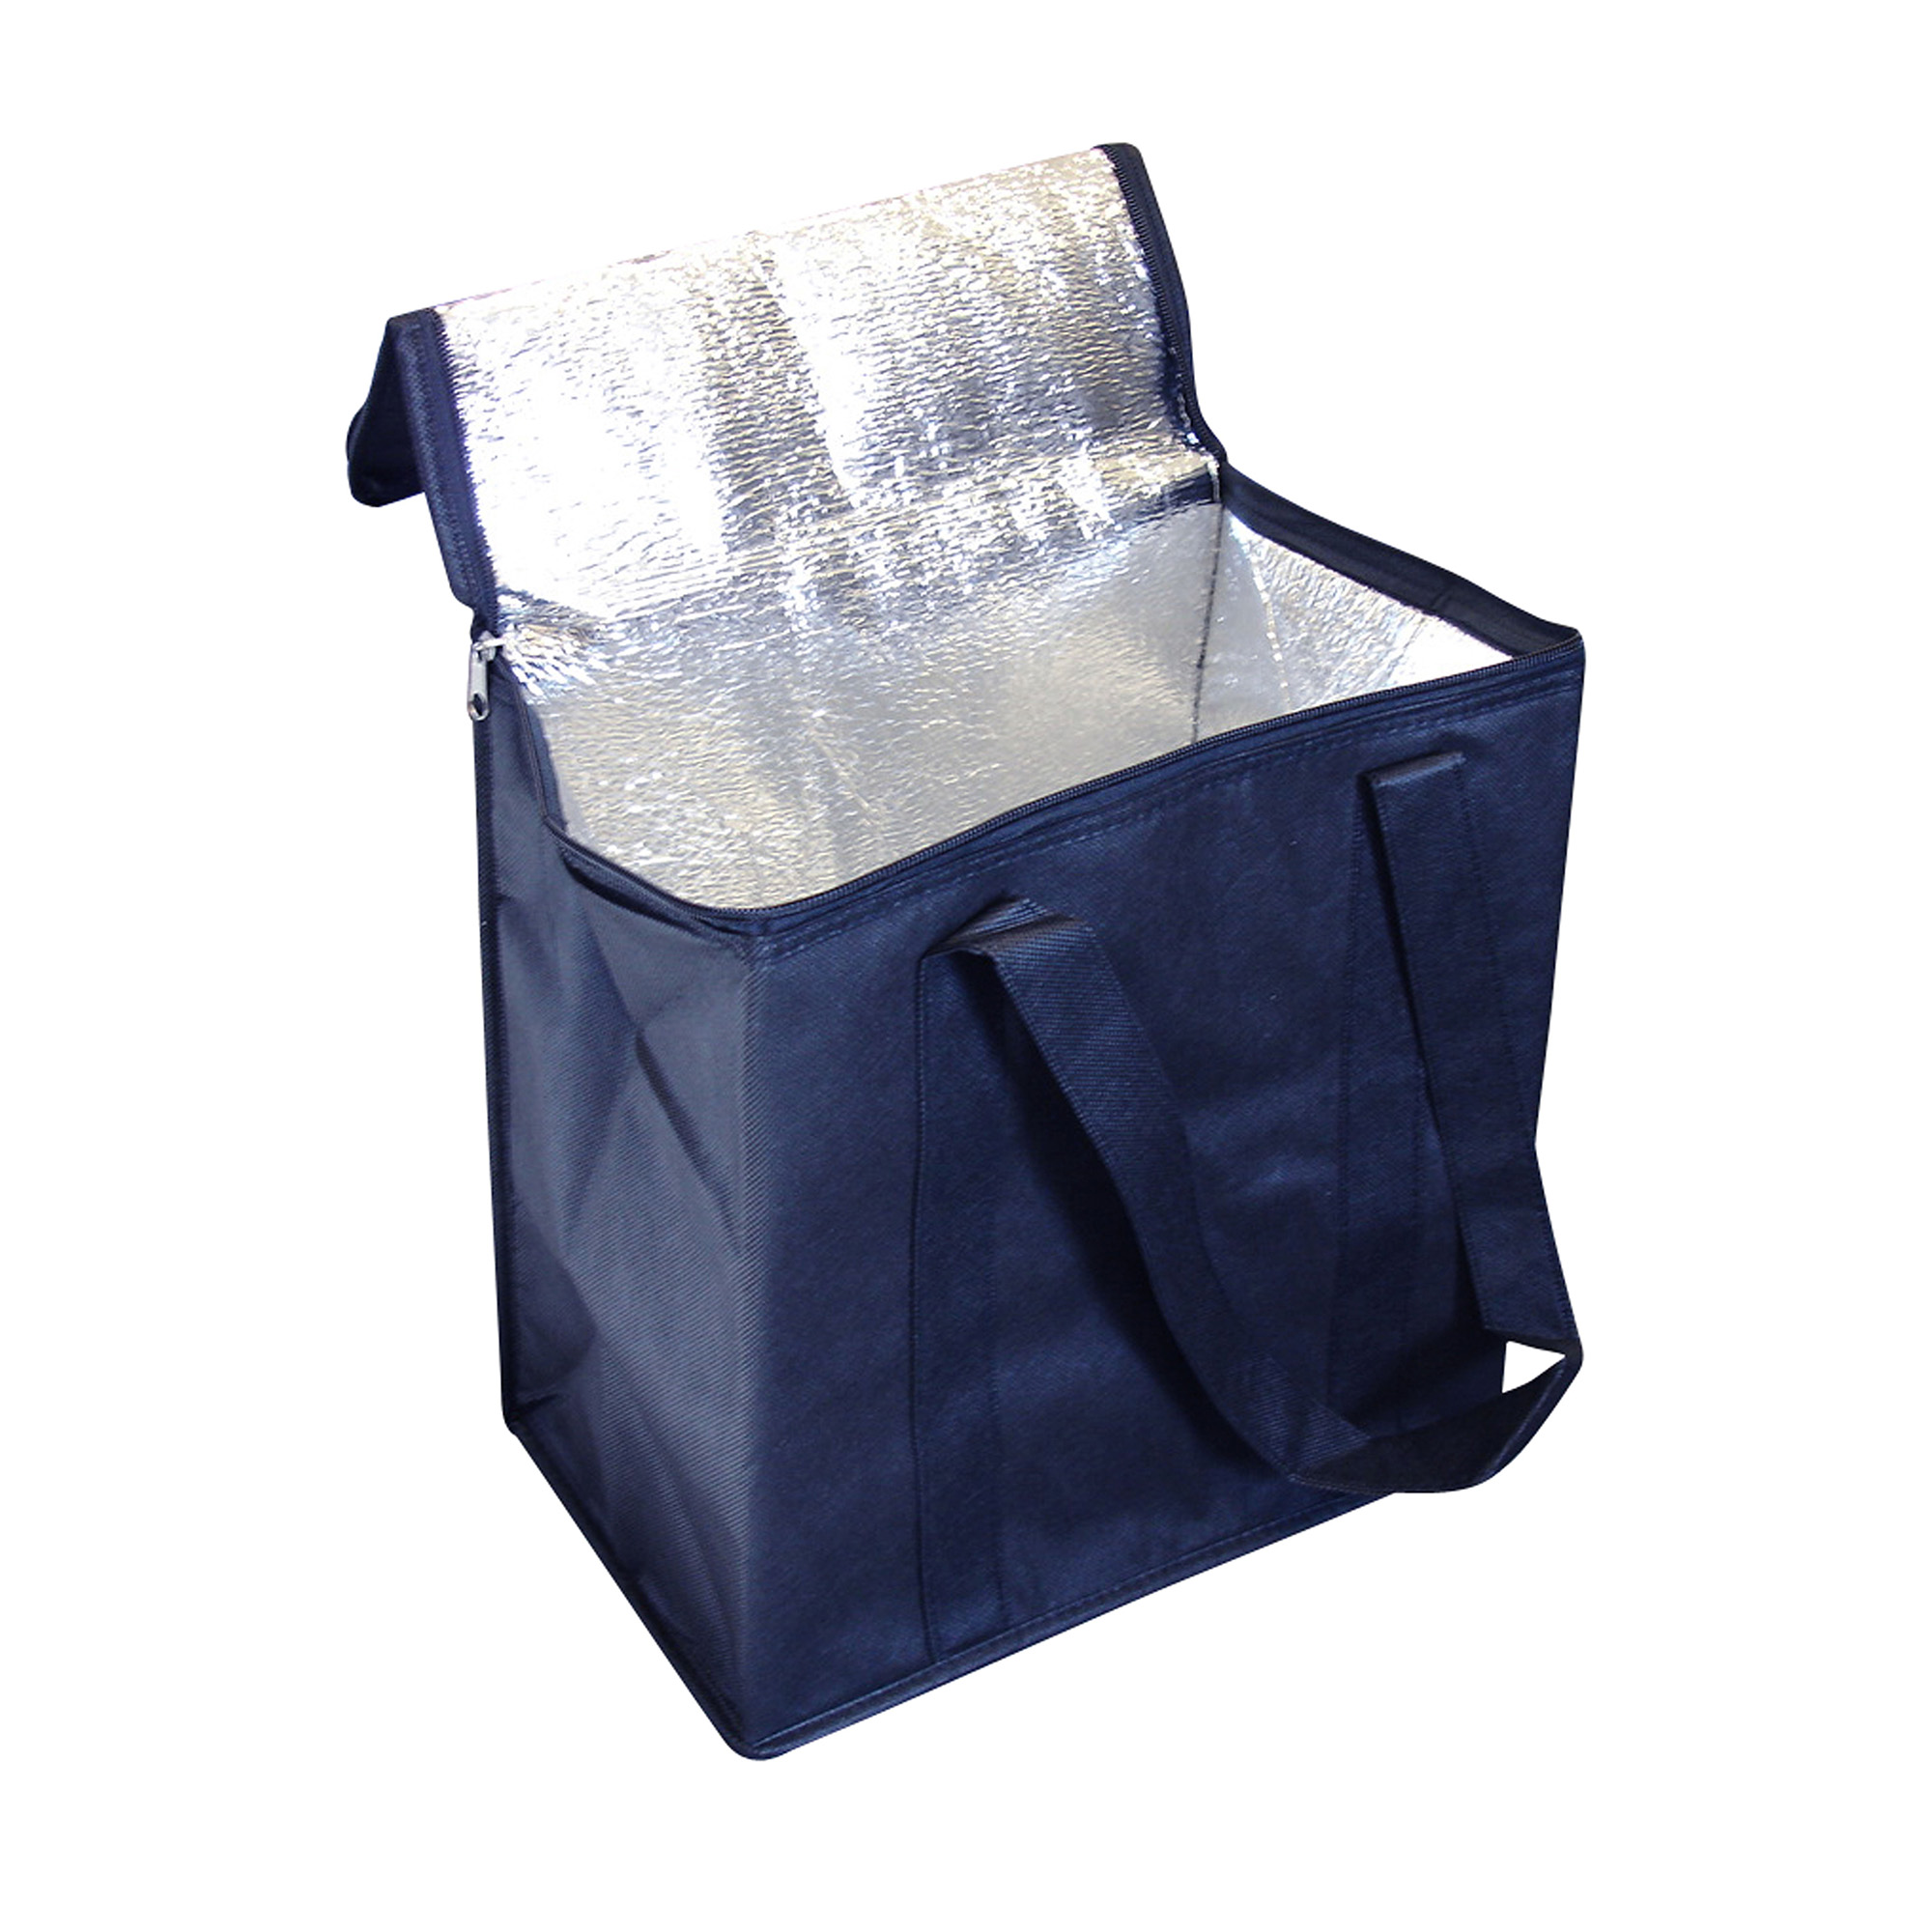 NON WOVEN COOLER BAG WITH ZIPPED LID - 1 Colour Print, From $2.85